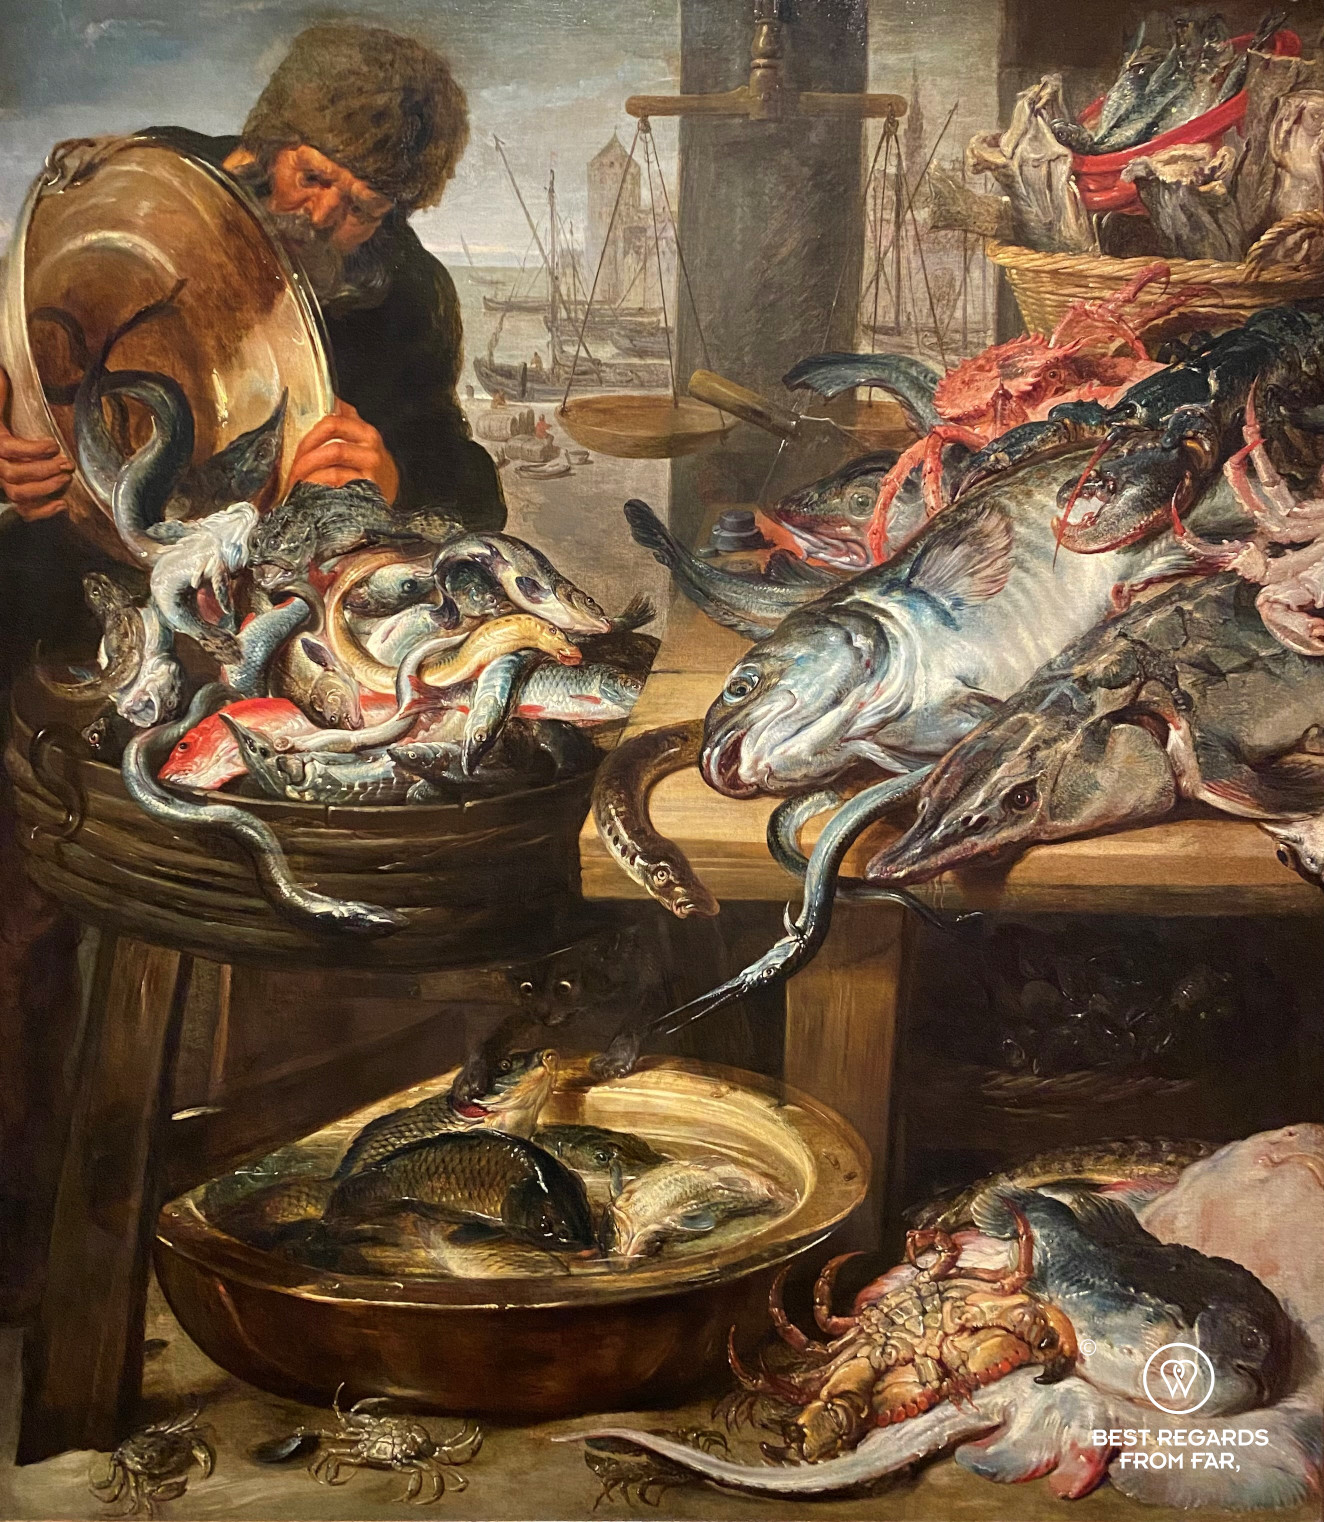 Fish market in Antwerp (1620's) by Frans Snijders, Snijders Rockoxhuis, Antwerp, with sea and river fish and Het Steen and the cathedral in the background.